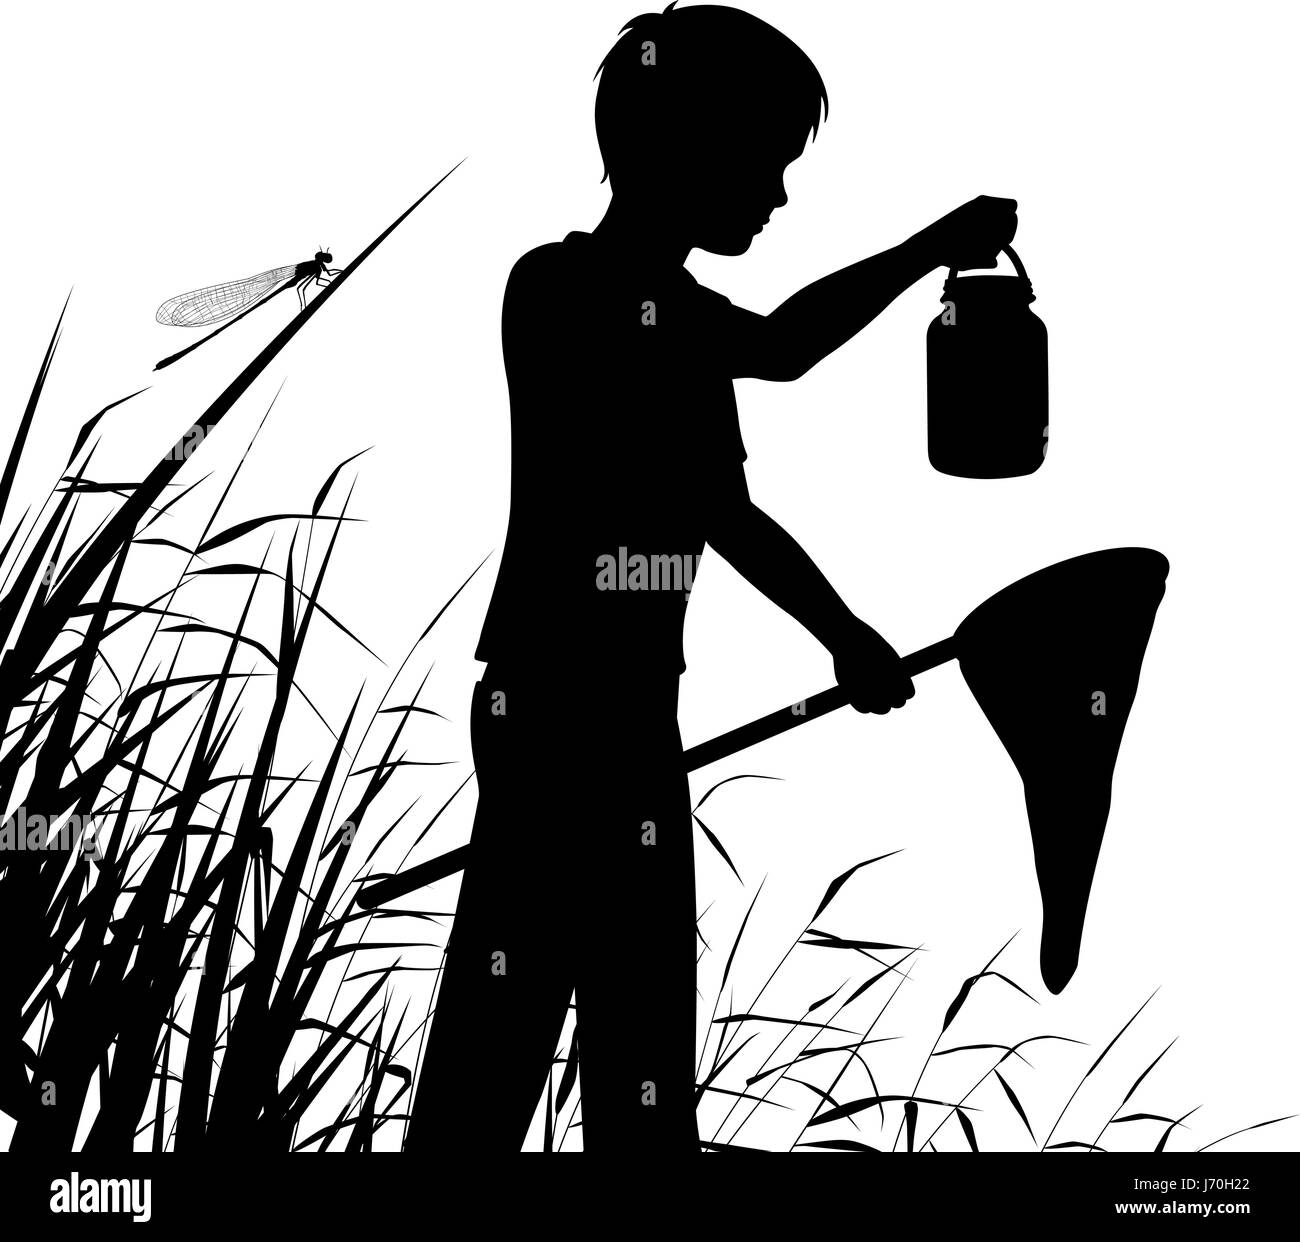 Image result for pond dipping silhouette